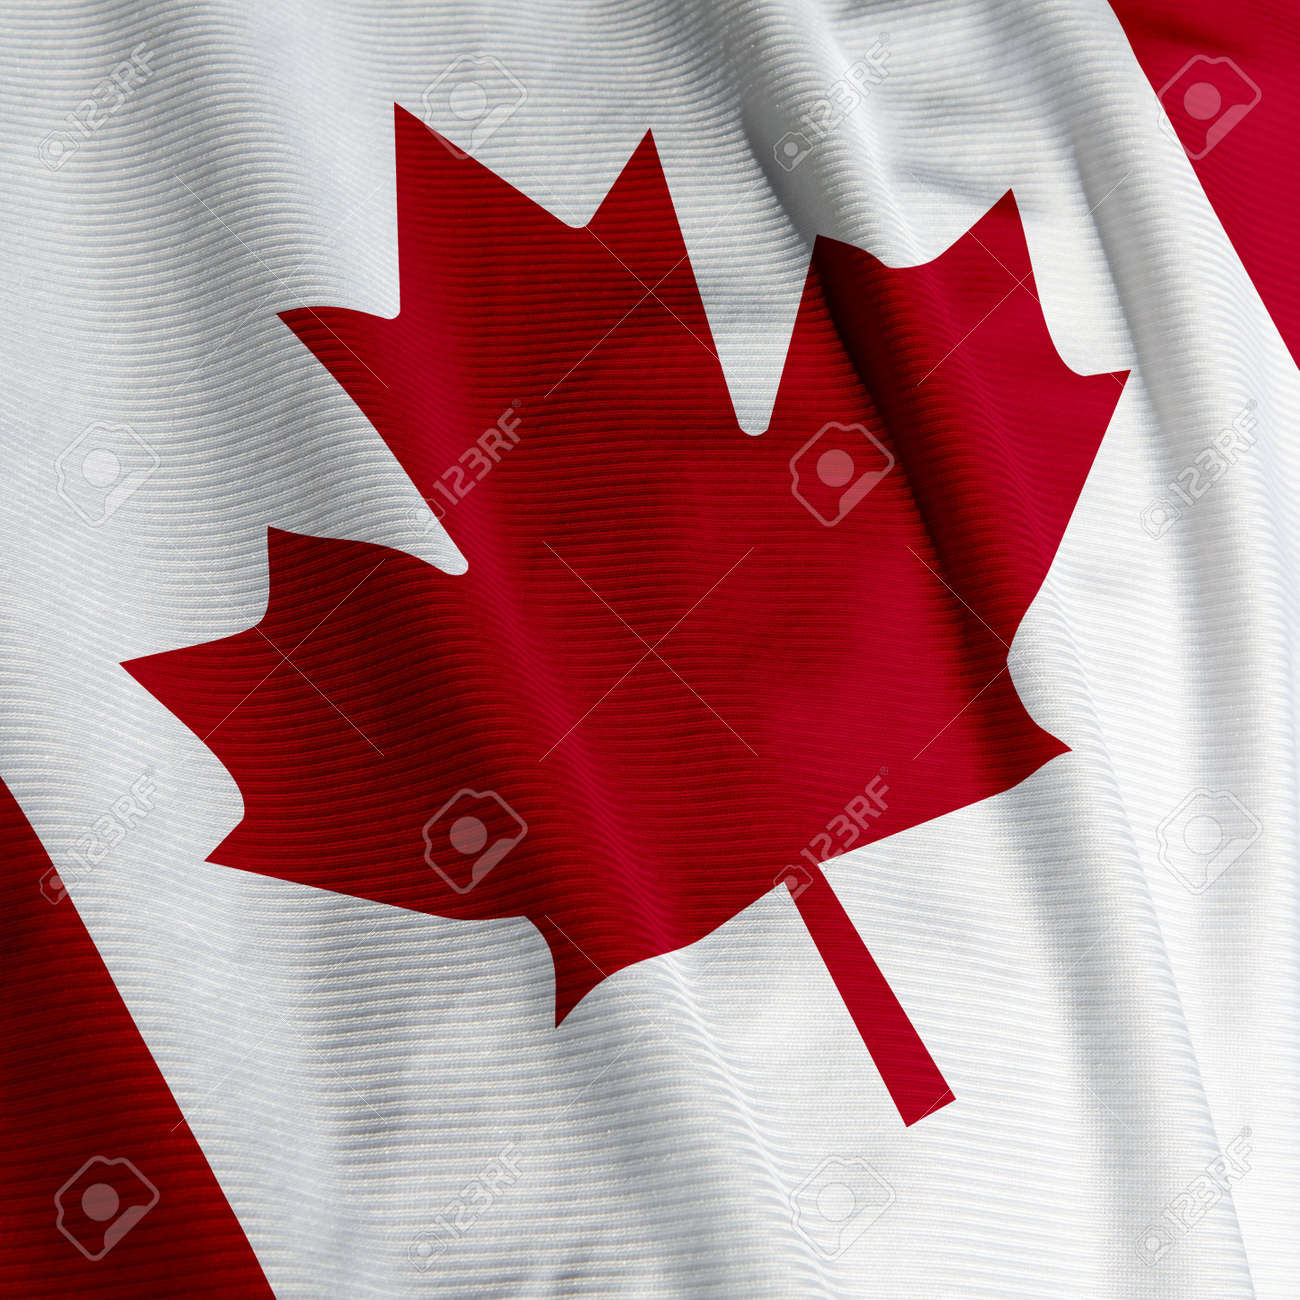 close up of the canadian flag square image stock photo picture